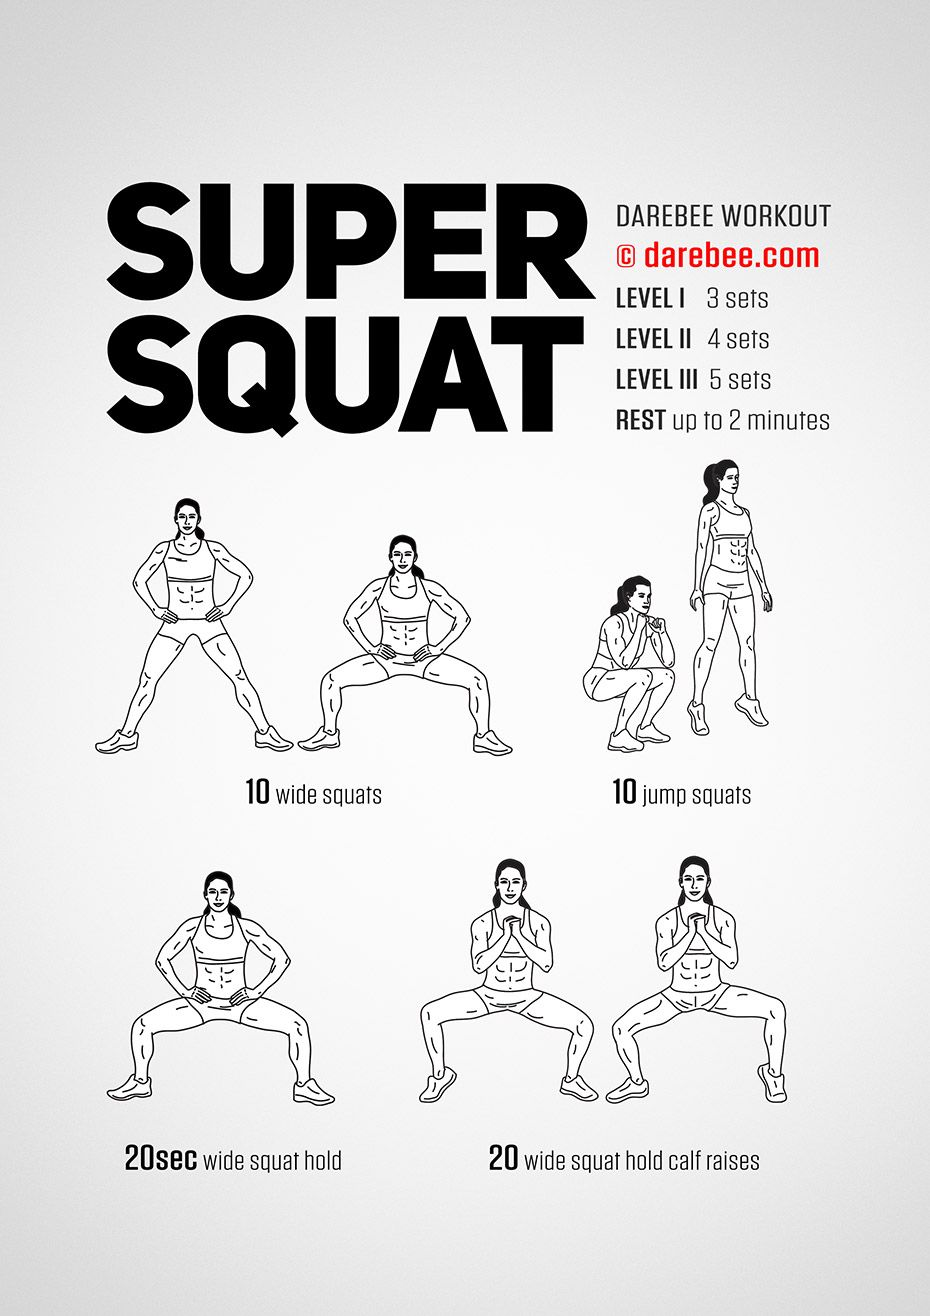 Super Squat Workout Squat Workout Darbee Workout Body